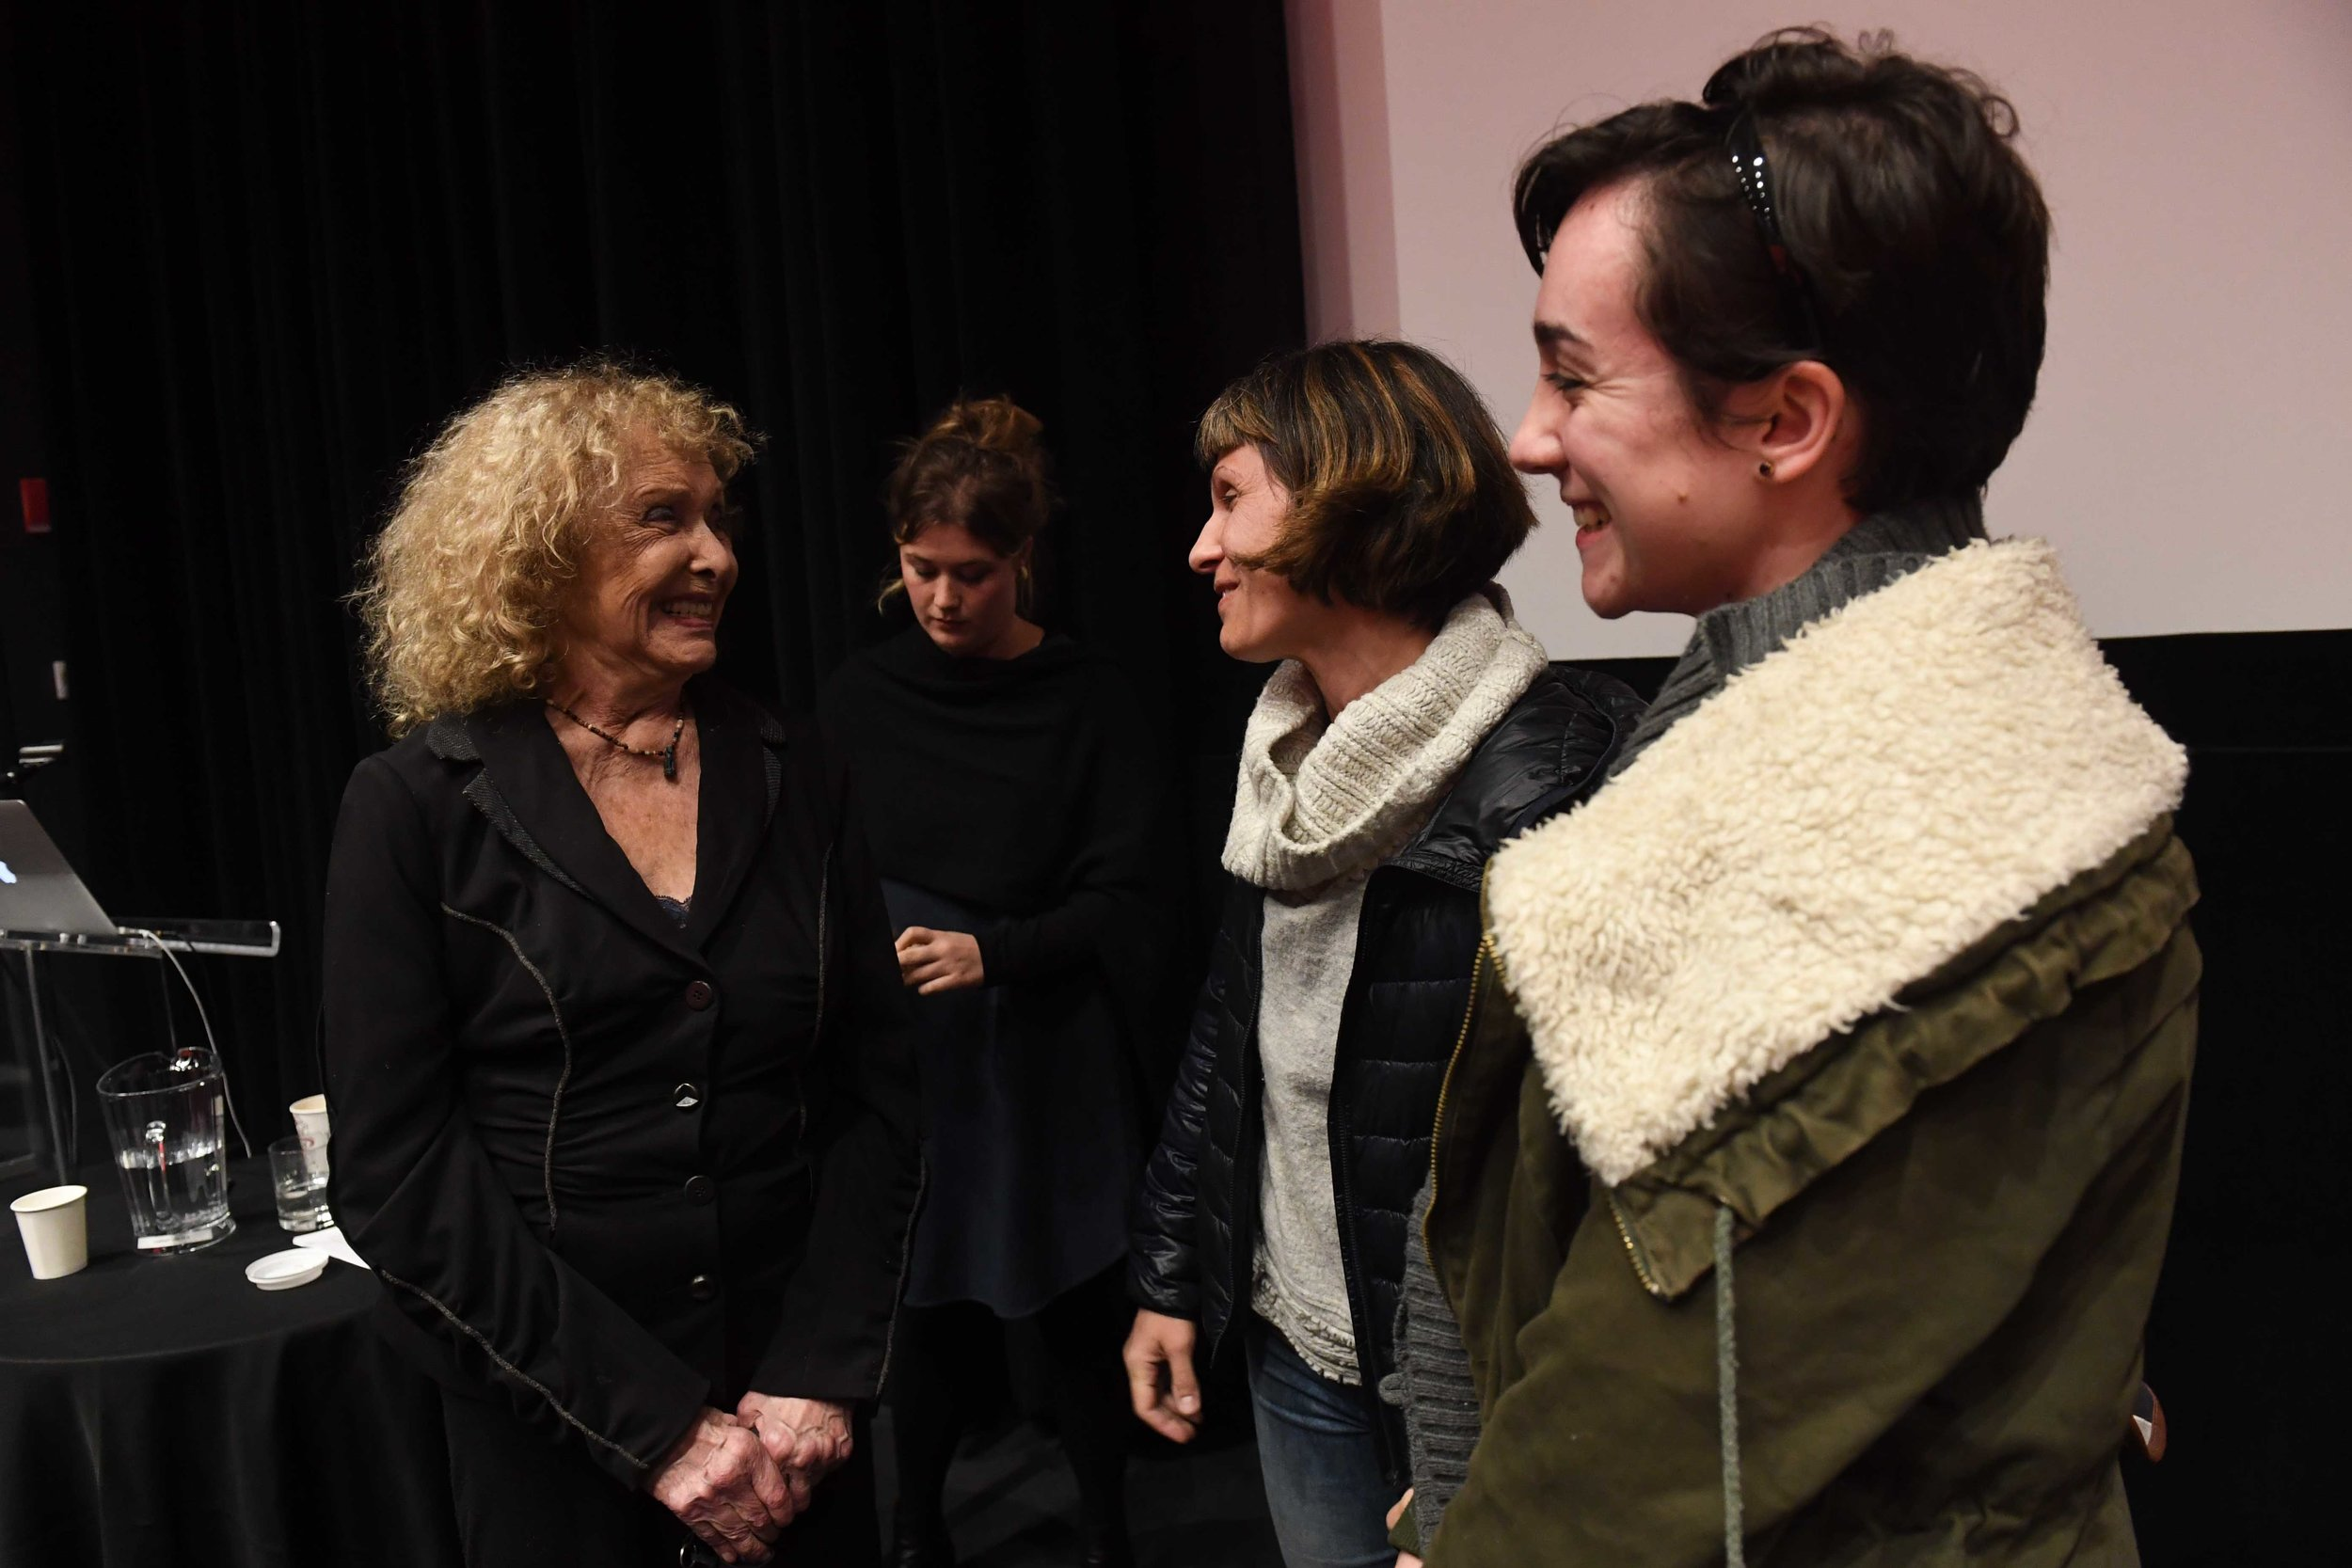 Carolee Schneemann and guests, November 9, 2017,  Lenfest Center for the Arts